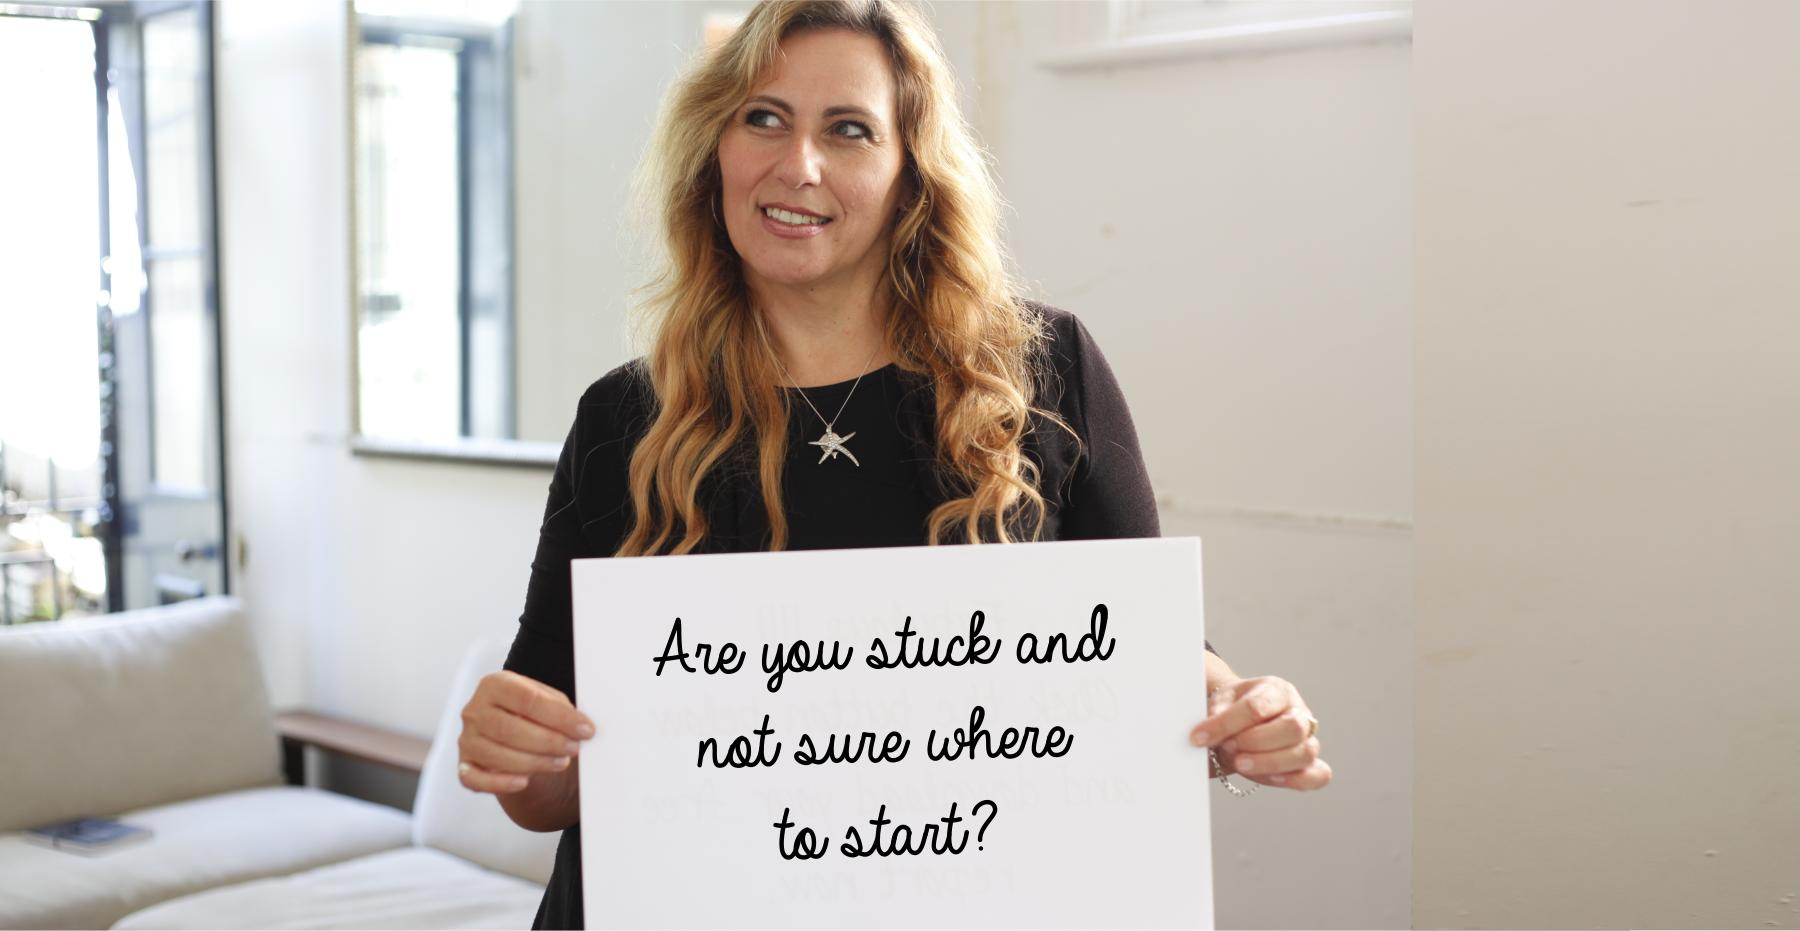 Ivana Katz - Are you stuck and not sure where to start?